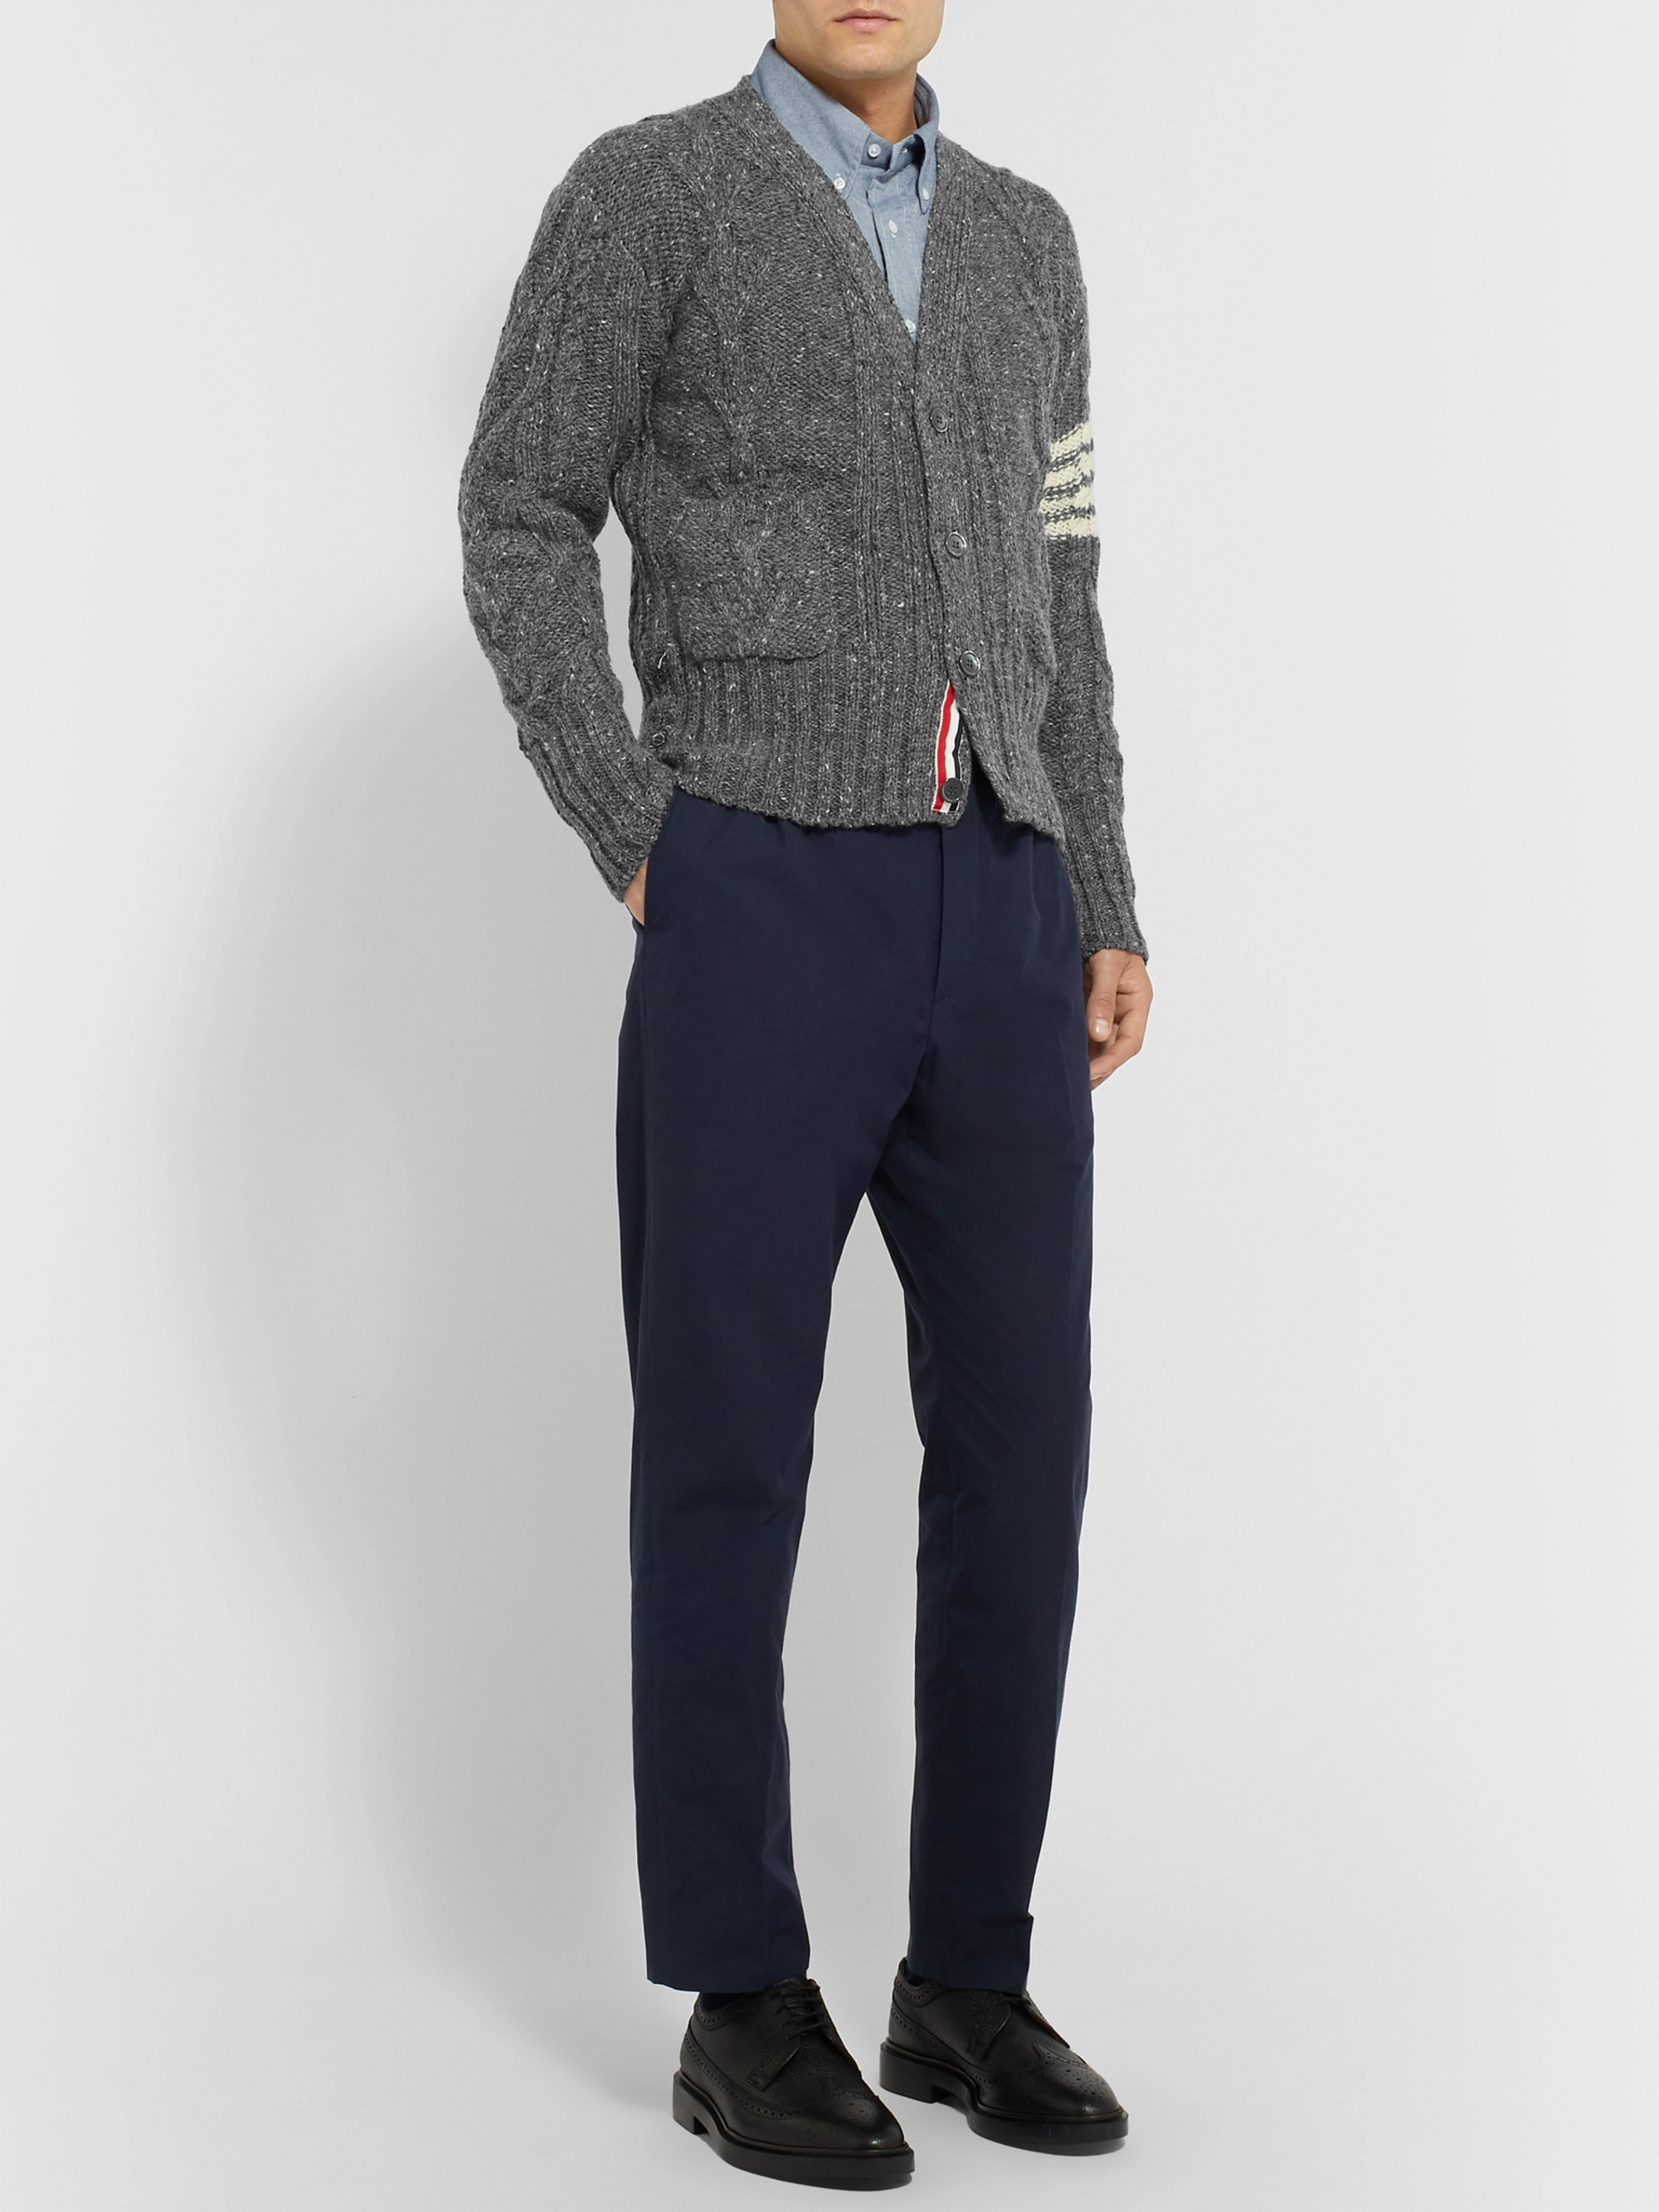 4f9f56598aa169 Thom Browne Grosgrain-Trimmed Striped Cable-Knit Wool and Mohair-Blend  Cardigan